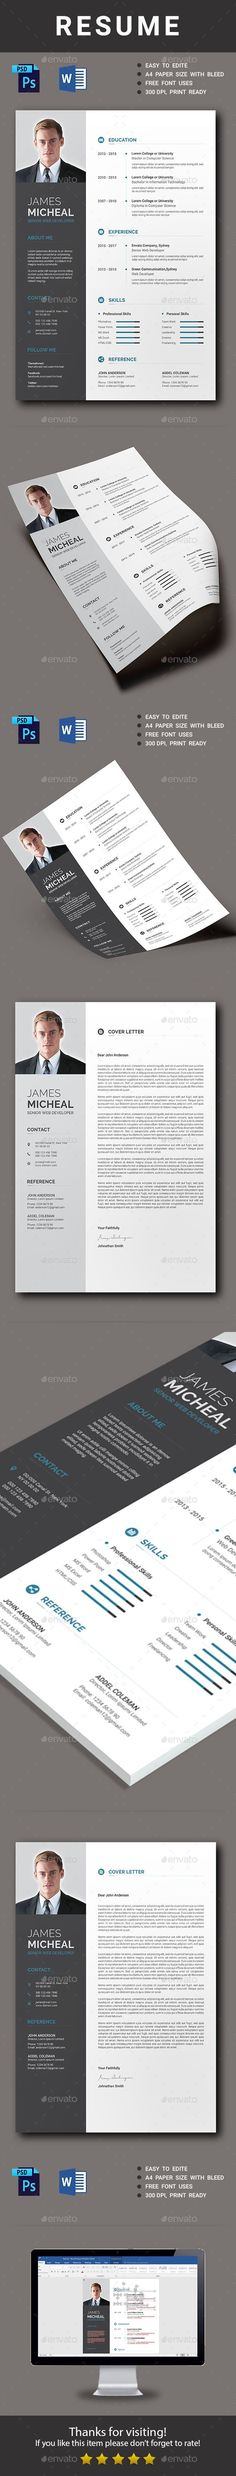 Resume Professional Resume / CV Template with super modern and professional look. Elegant page designs are easy to use and customize, so you can quickly tailor-make your resume for any opportunity and help you to get your job. Job Resume, Resume Tips, Free Resume, Resume Ideas, Web Design, Resume Design, Stationery Design, Design Trends, Cv Template